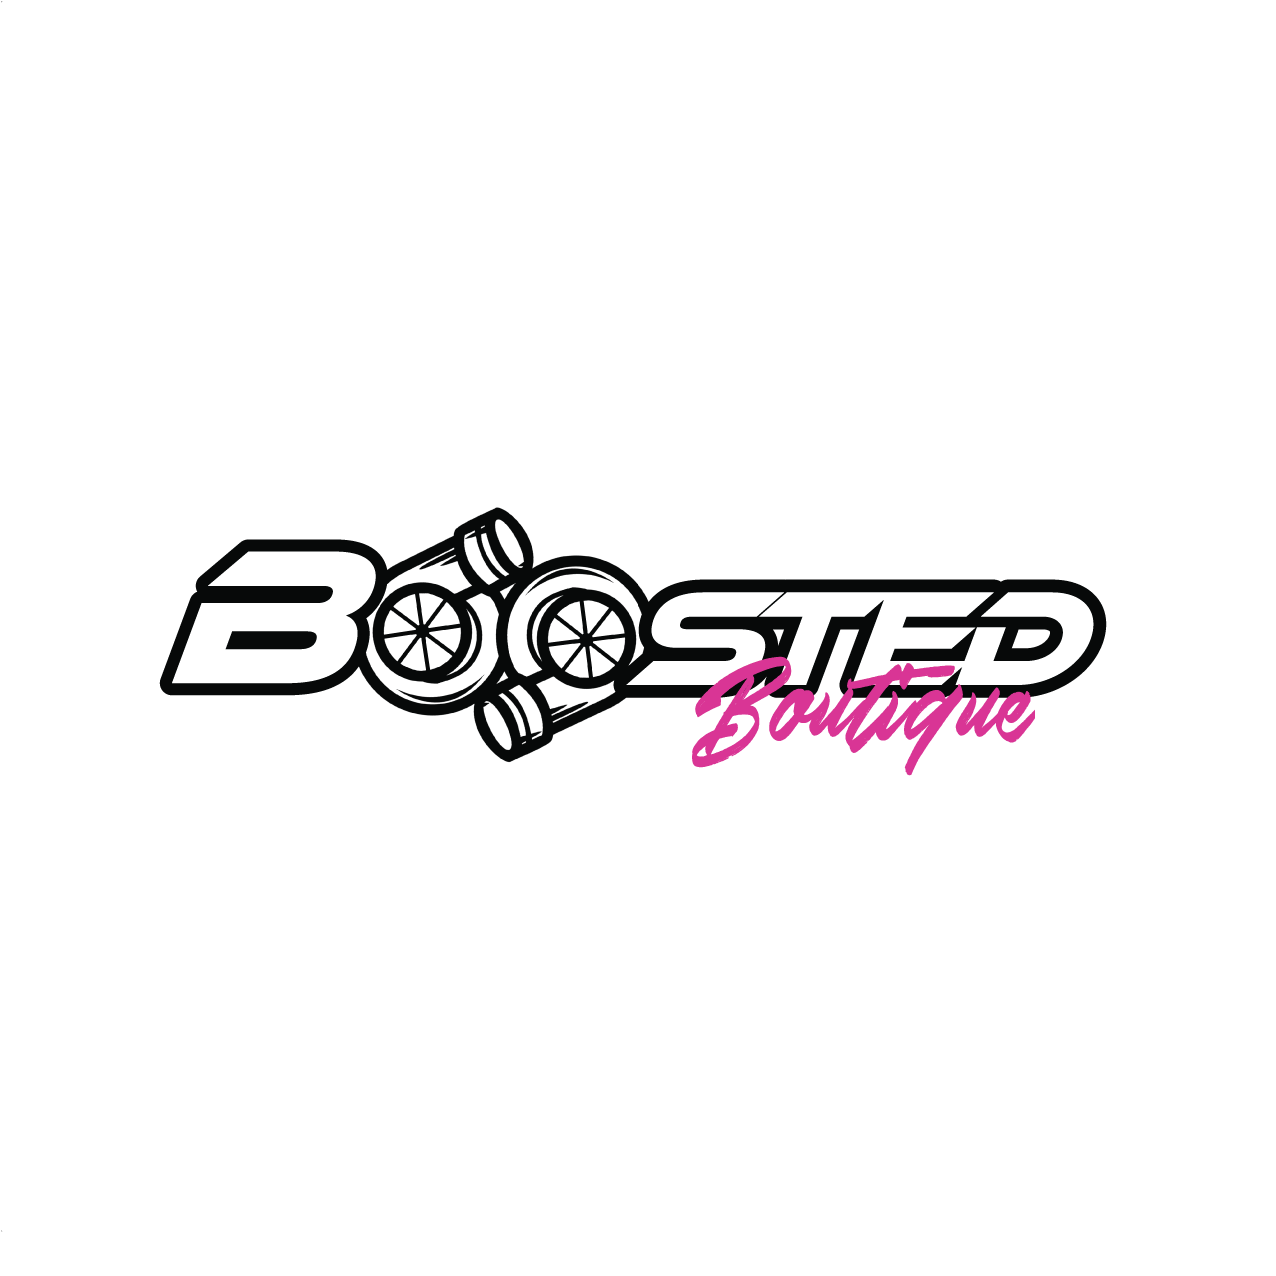 boosted-logo